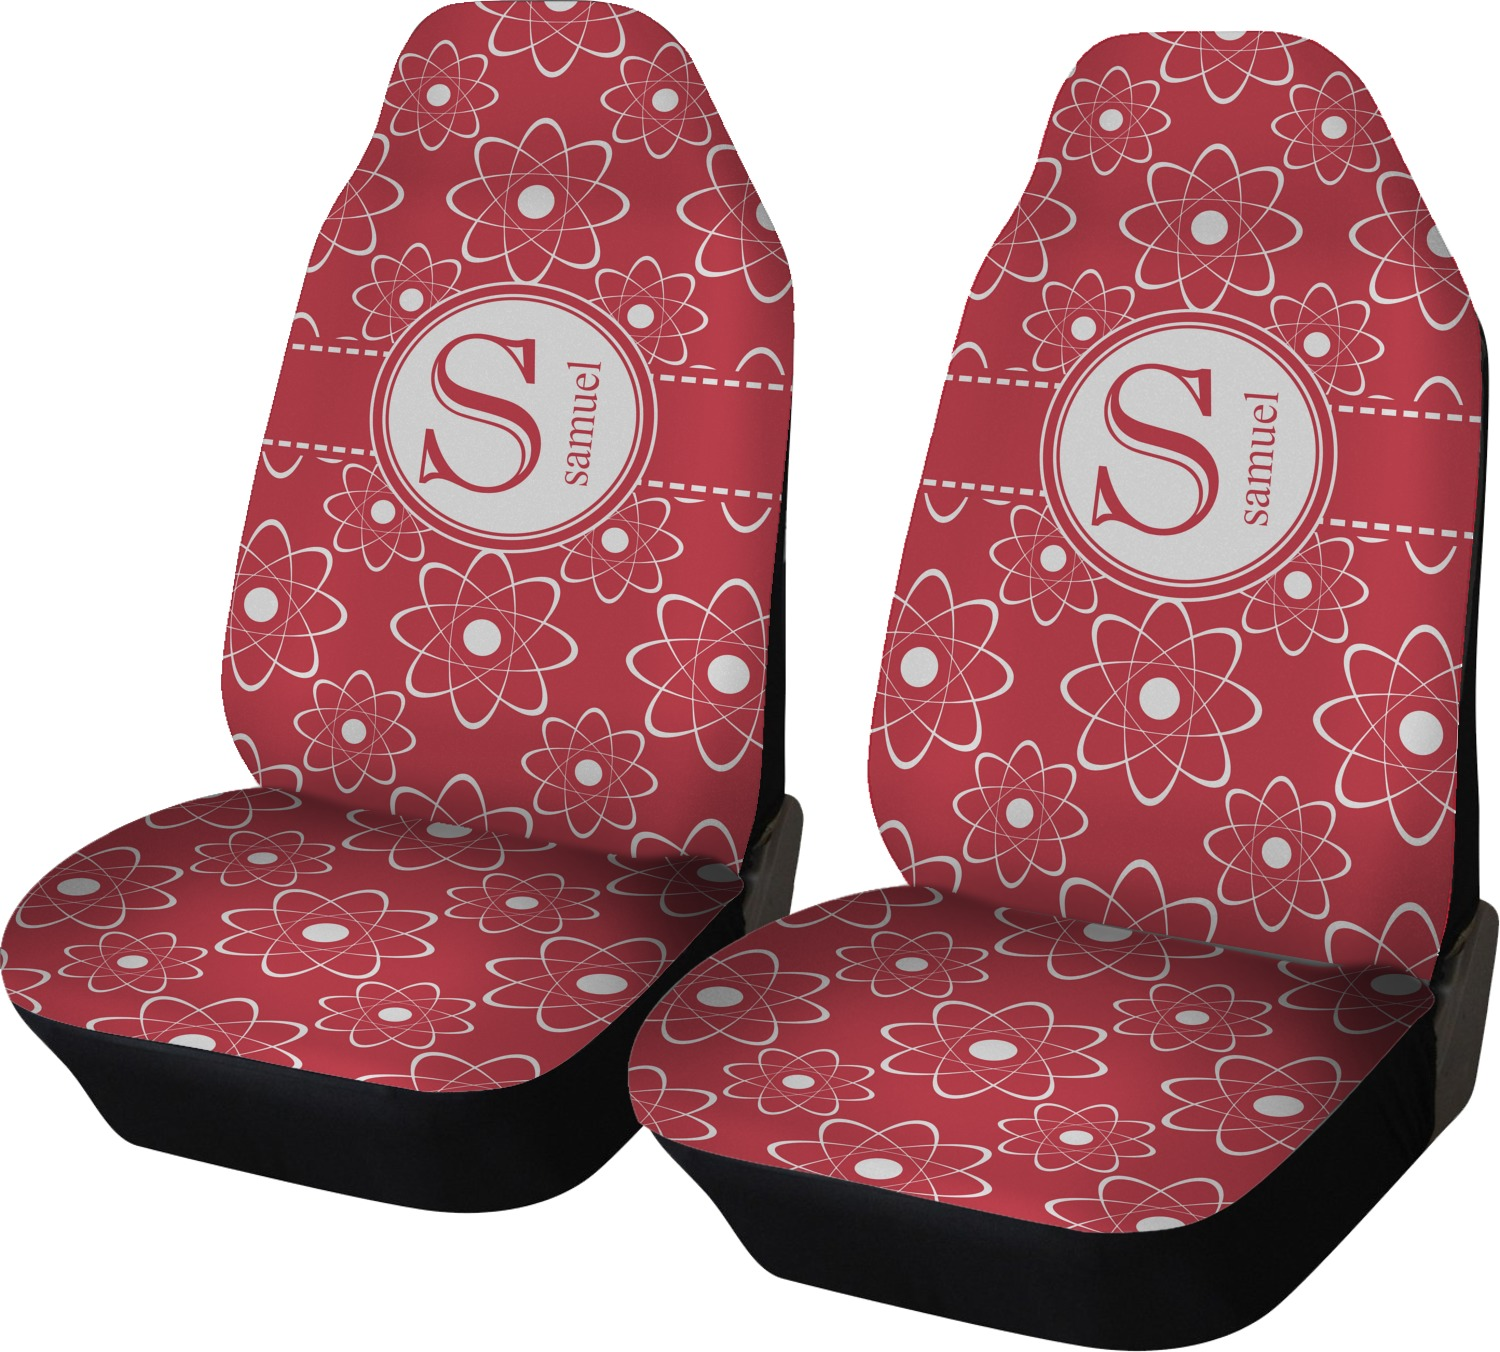 Atomic Orbit Car Seat Covers Set Of Two Personalized